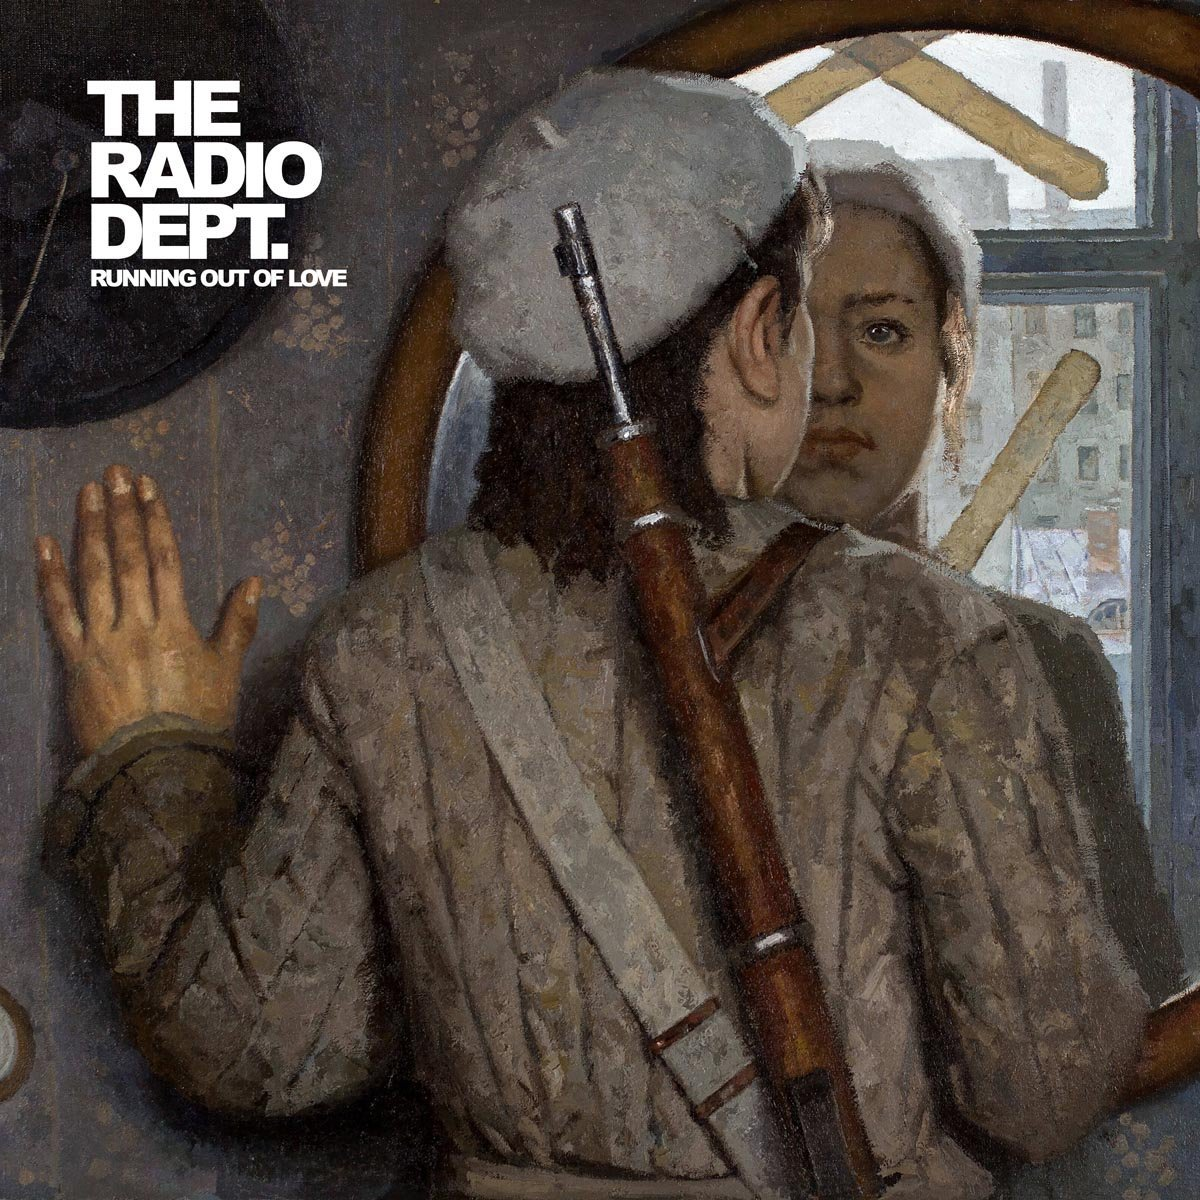 The Radio Dept.: Running Out Of Love [Album Review]